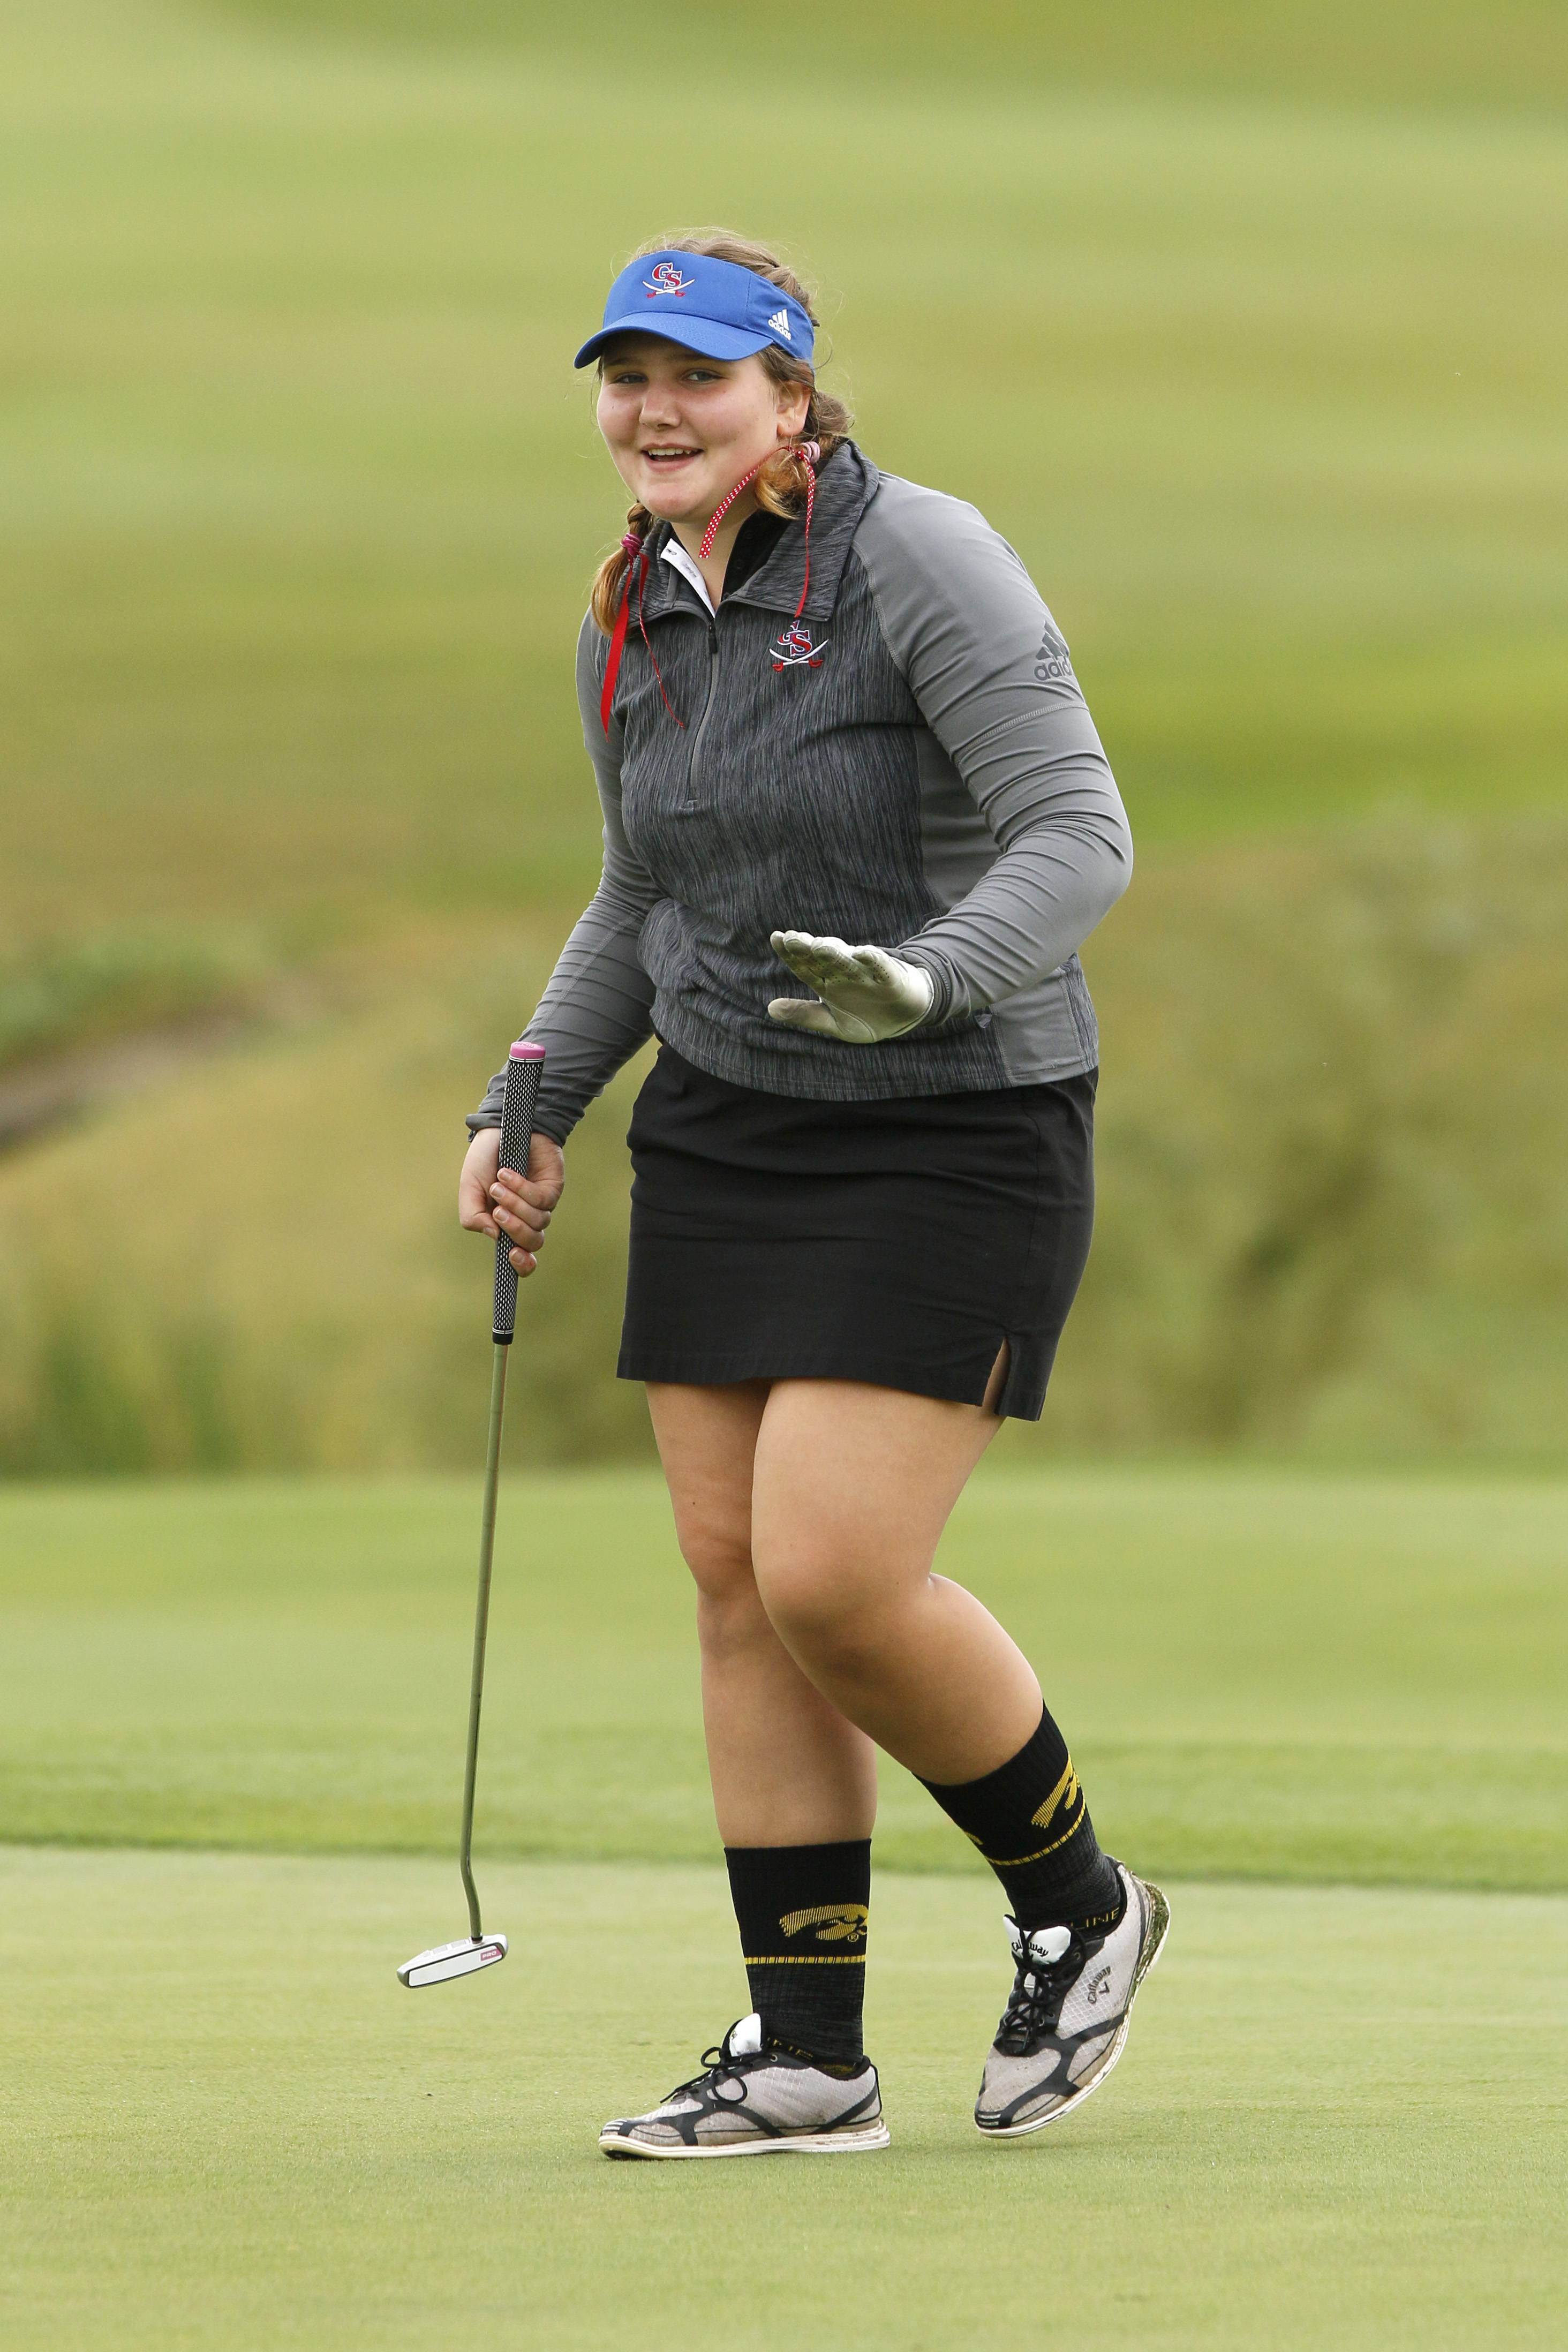 Glenbard South's Stephanie Price reacts to her putt during the Class 2A Nazareth girls golf regional at Links of the Carillon golf course in Plainfield.